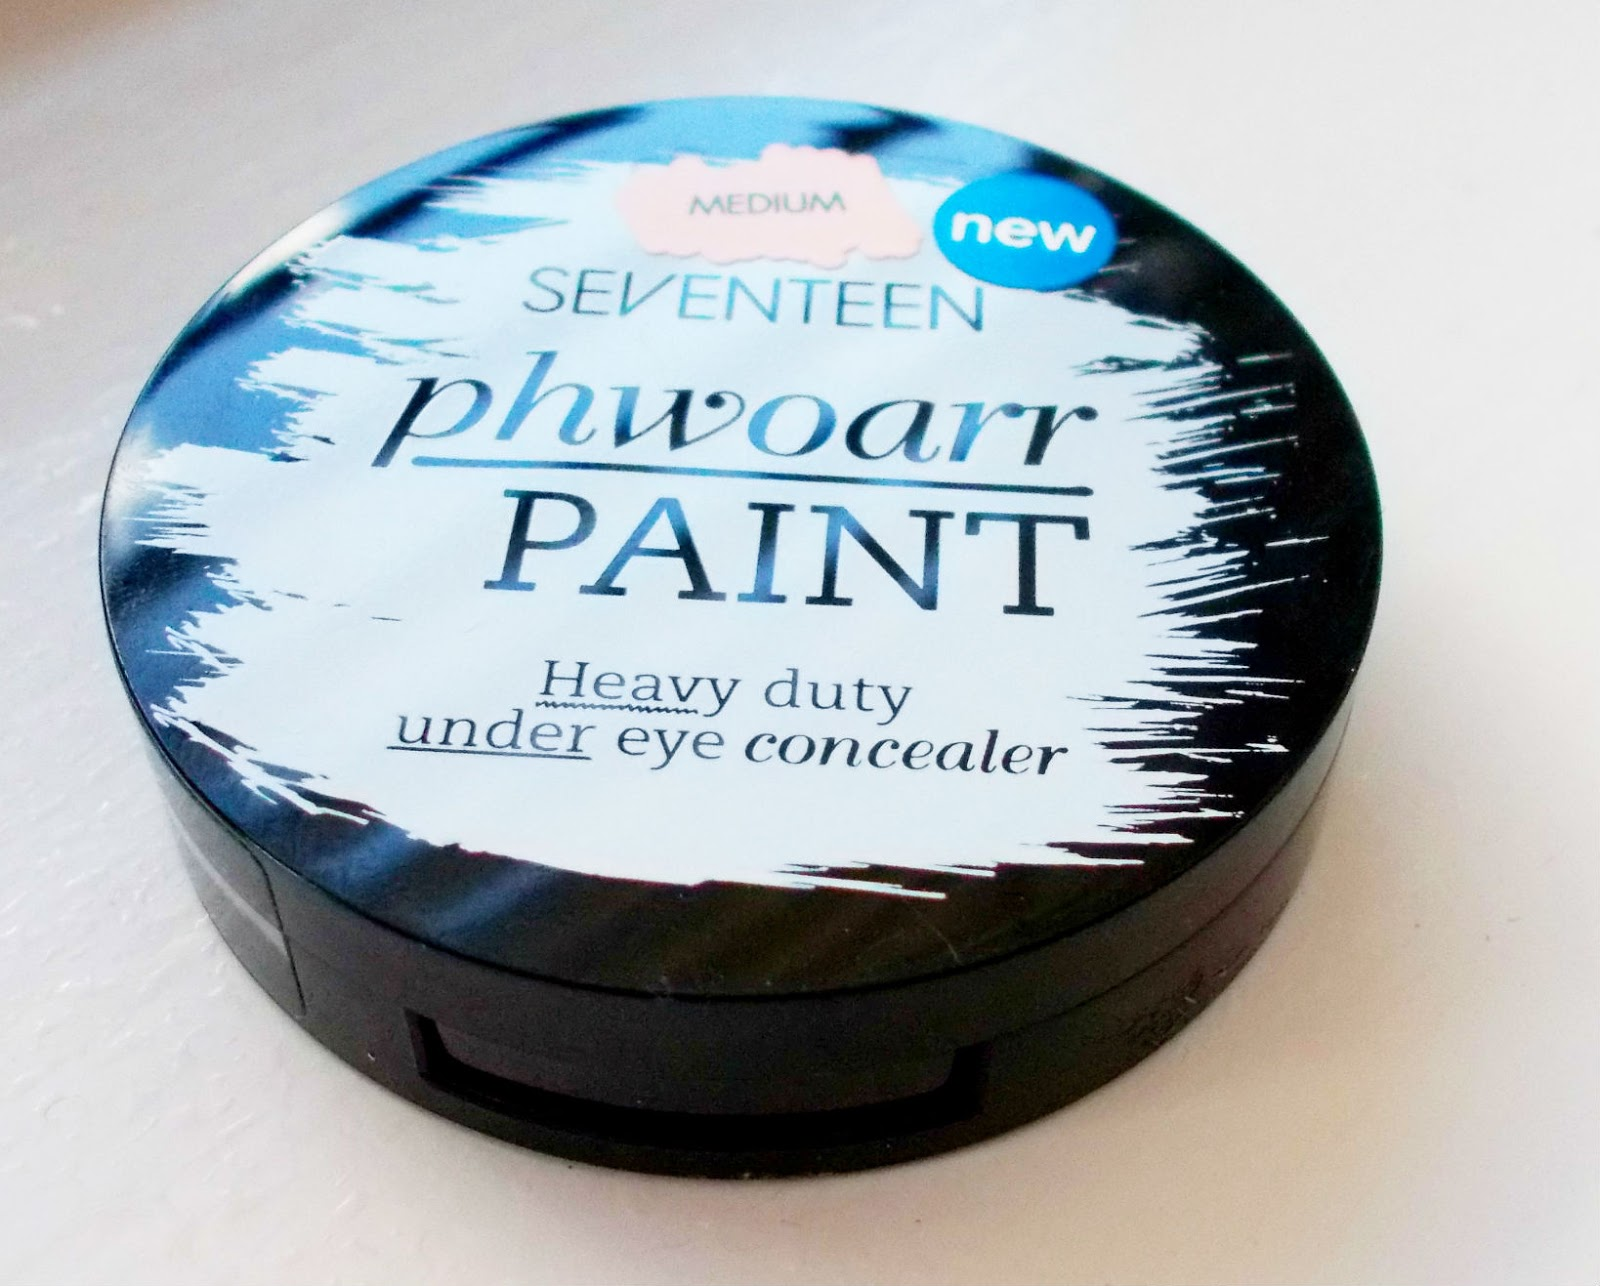 Seventeen Phwoarr Paint Concealer Review